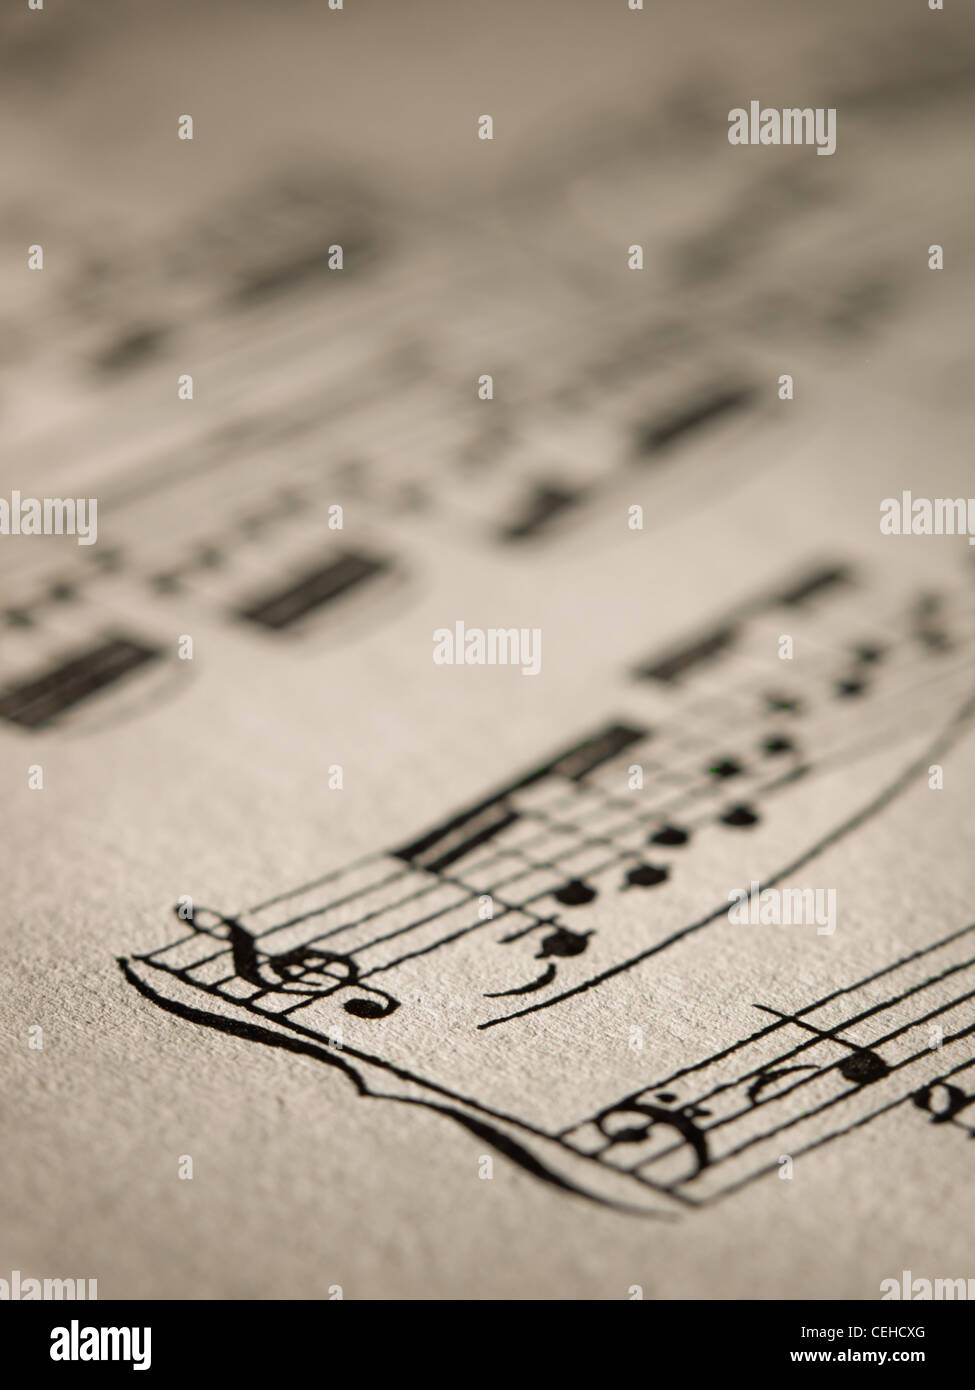 Sheet of music notes,closeup, for music,melody themes - Stock Image